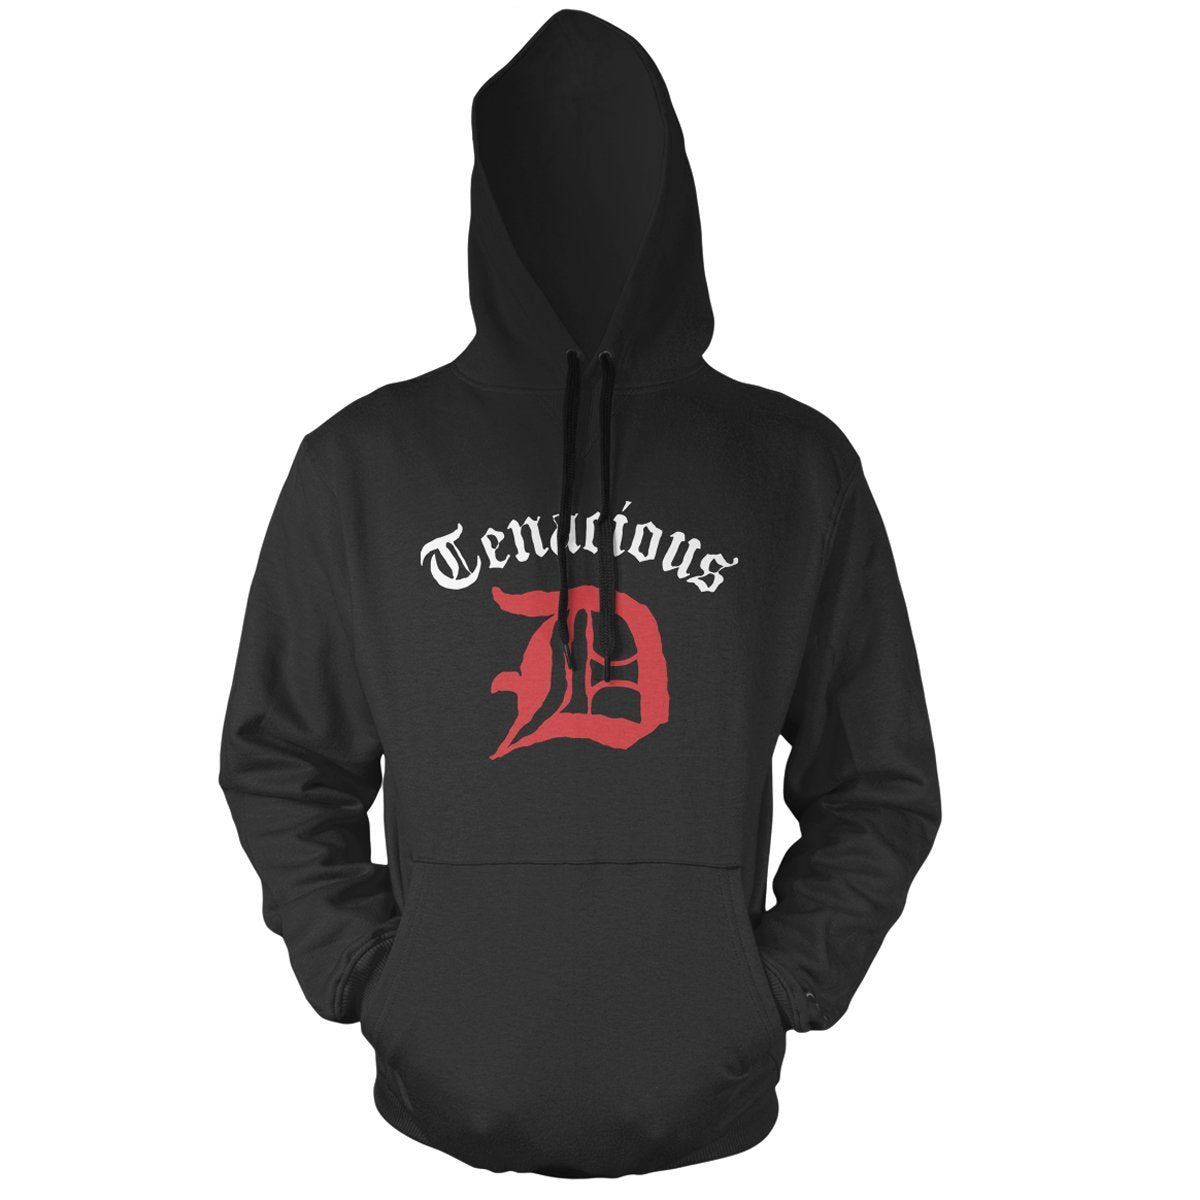 Tenacious D ...is Watching You - Hoodie Hoodie- Bingo Merch Official Merchandise Shop Official